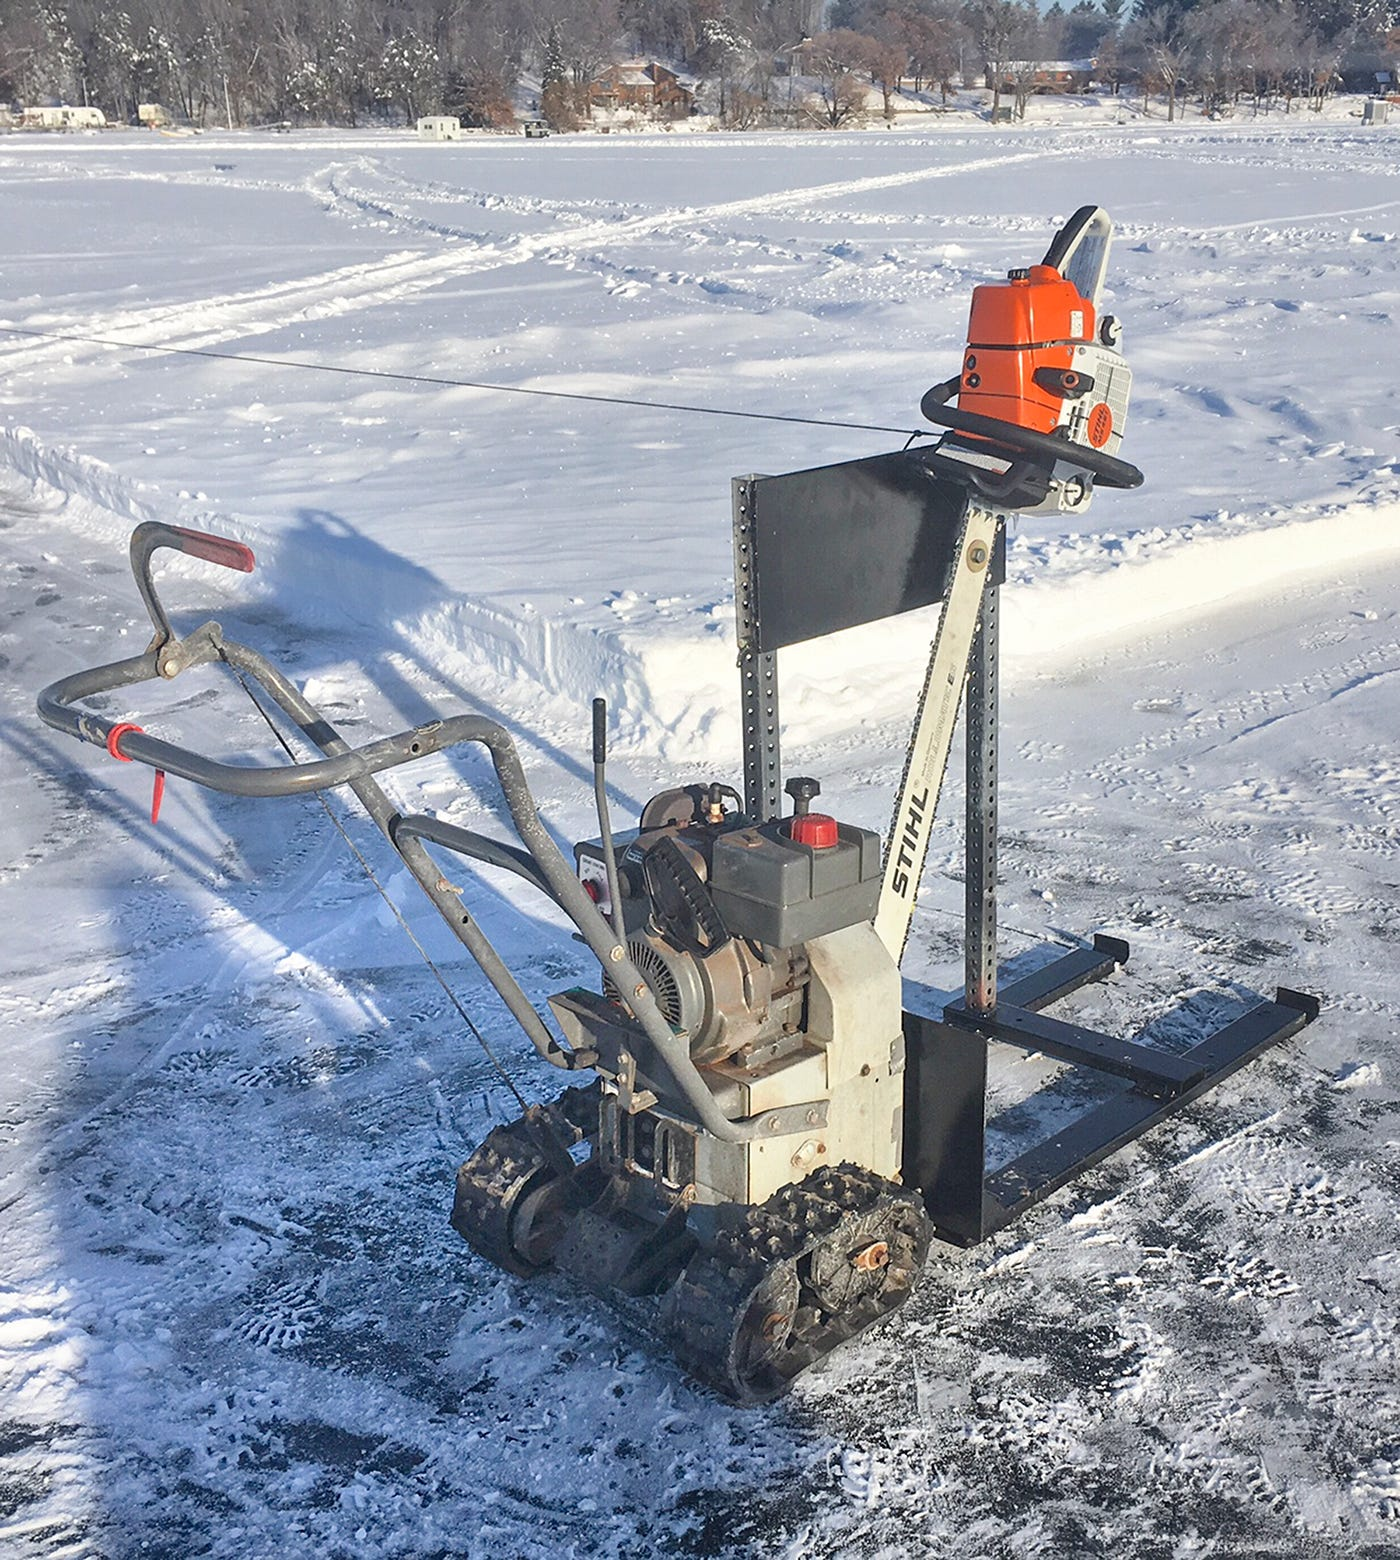 A homemade machine used to carve ice is made using pieces from a snowblower, steel skis and a saw that slides up and down.